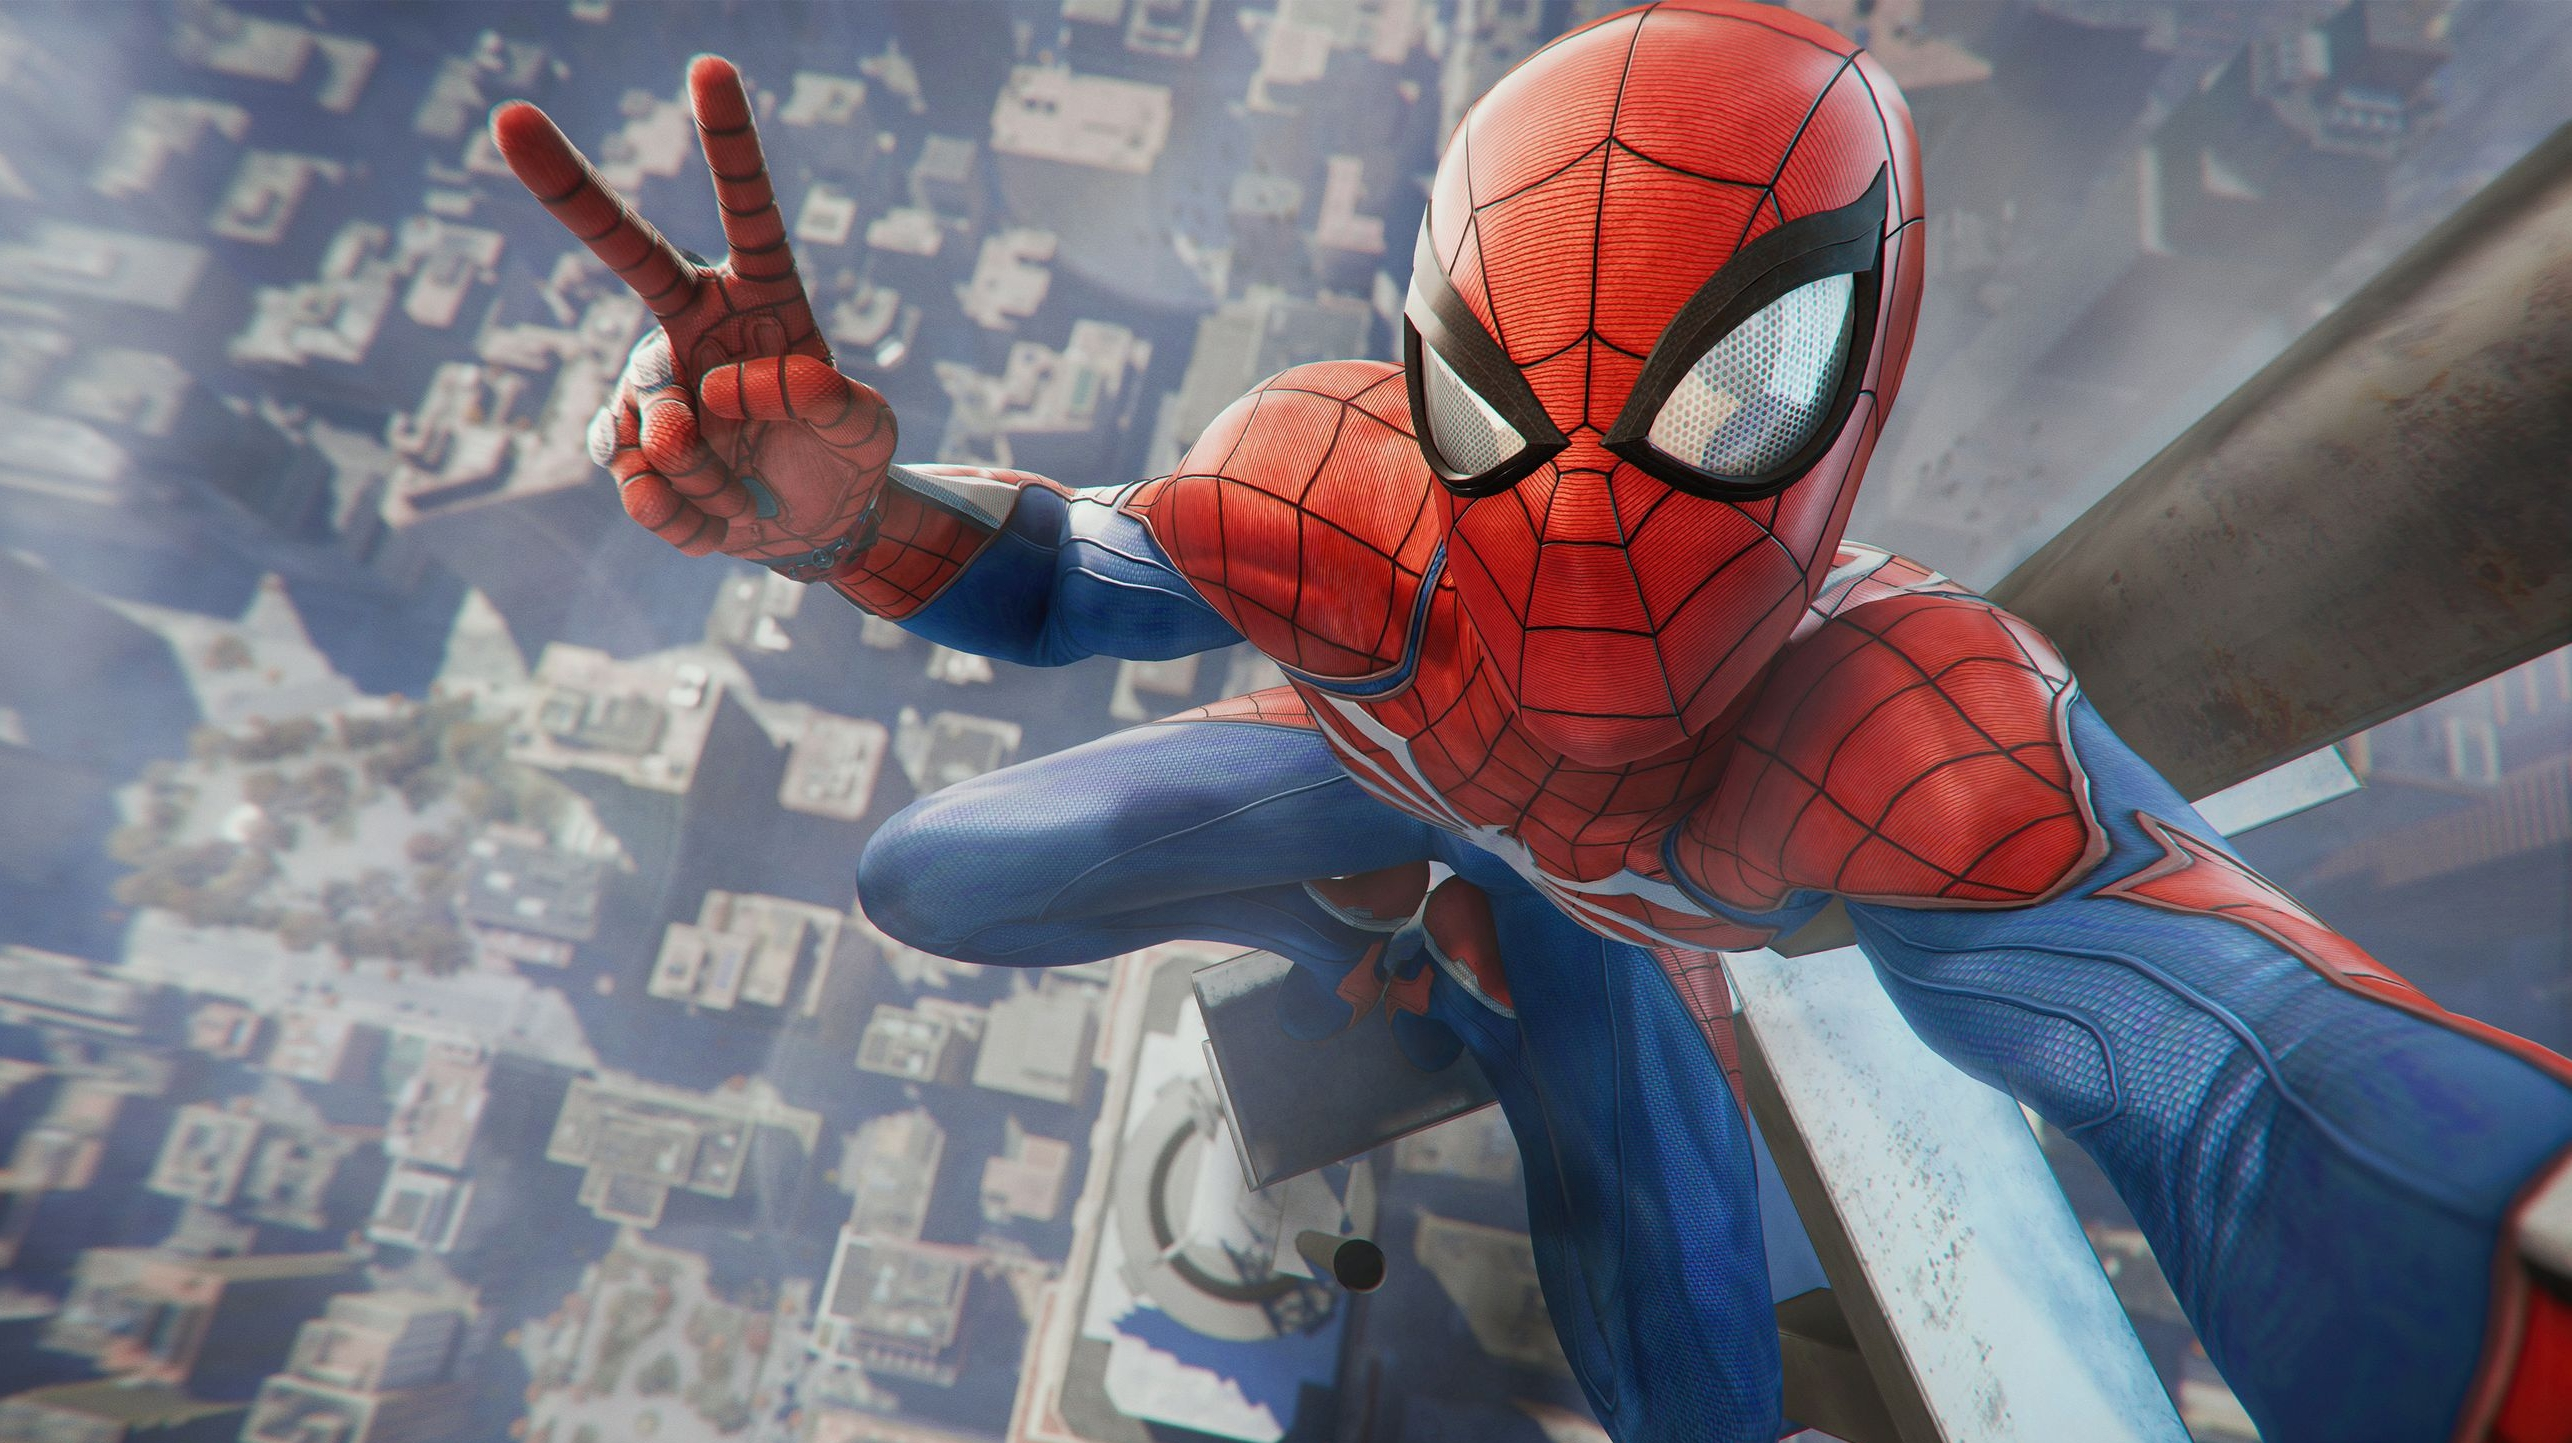 Spider Man Walkthrough And Guide Missions Sidequests And Story